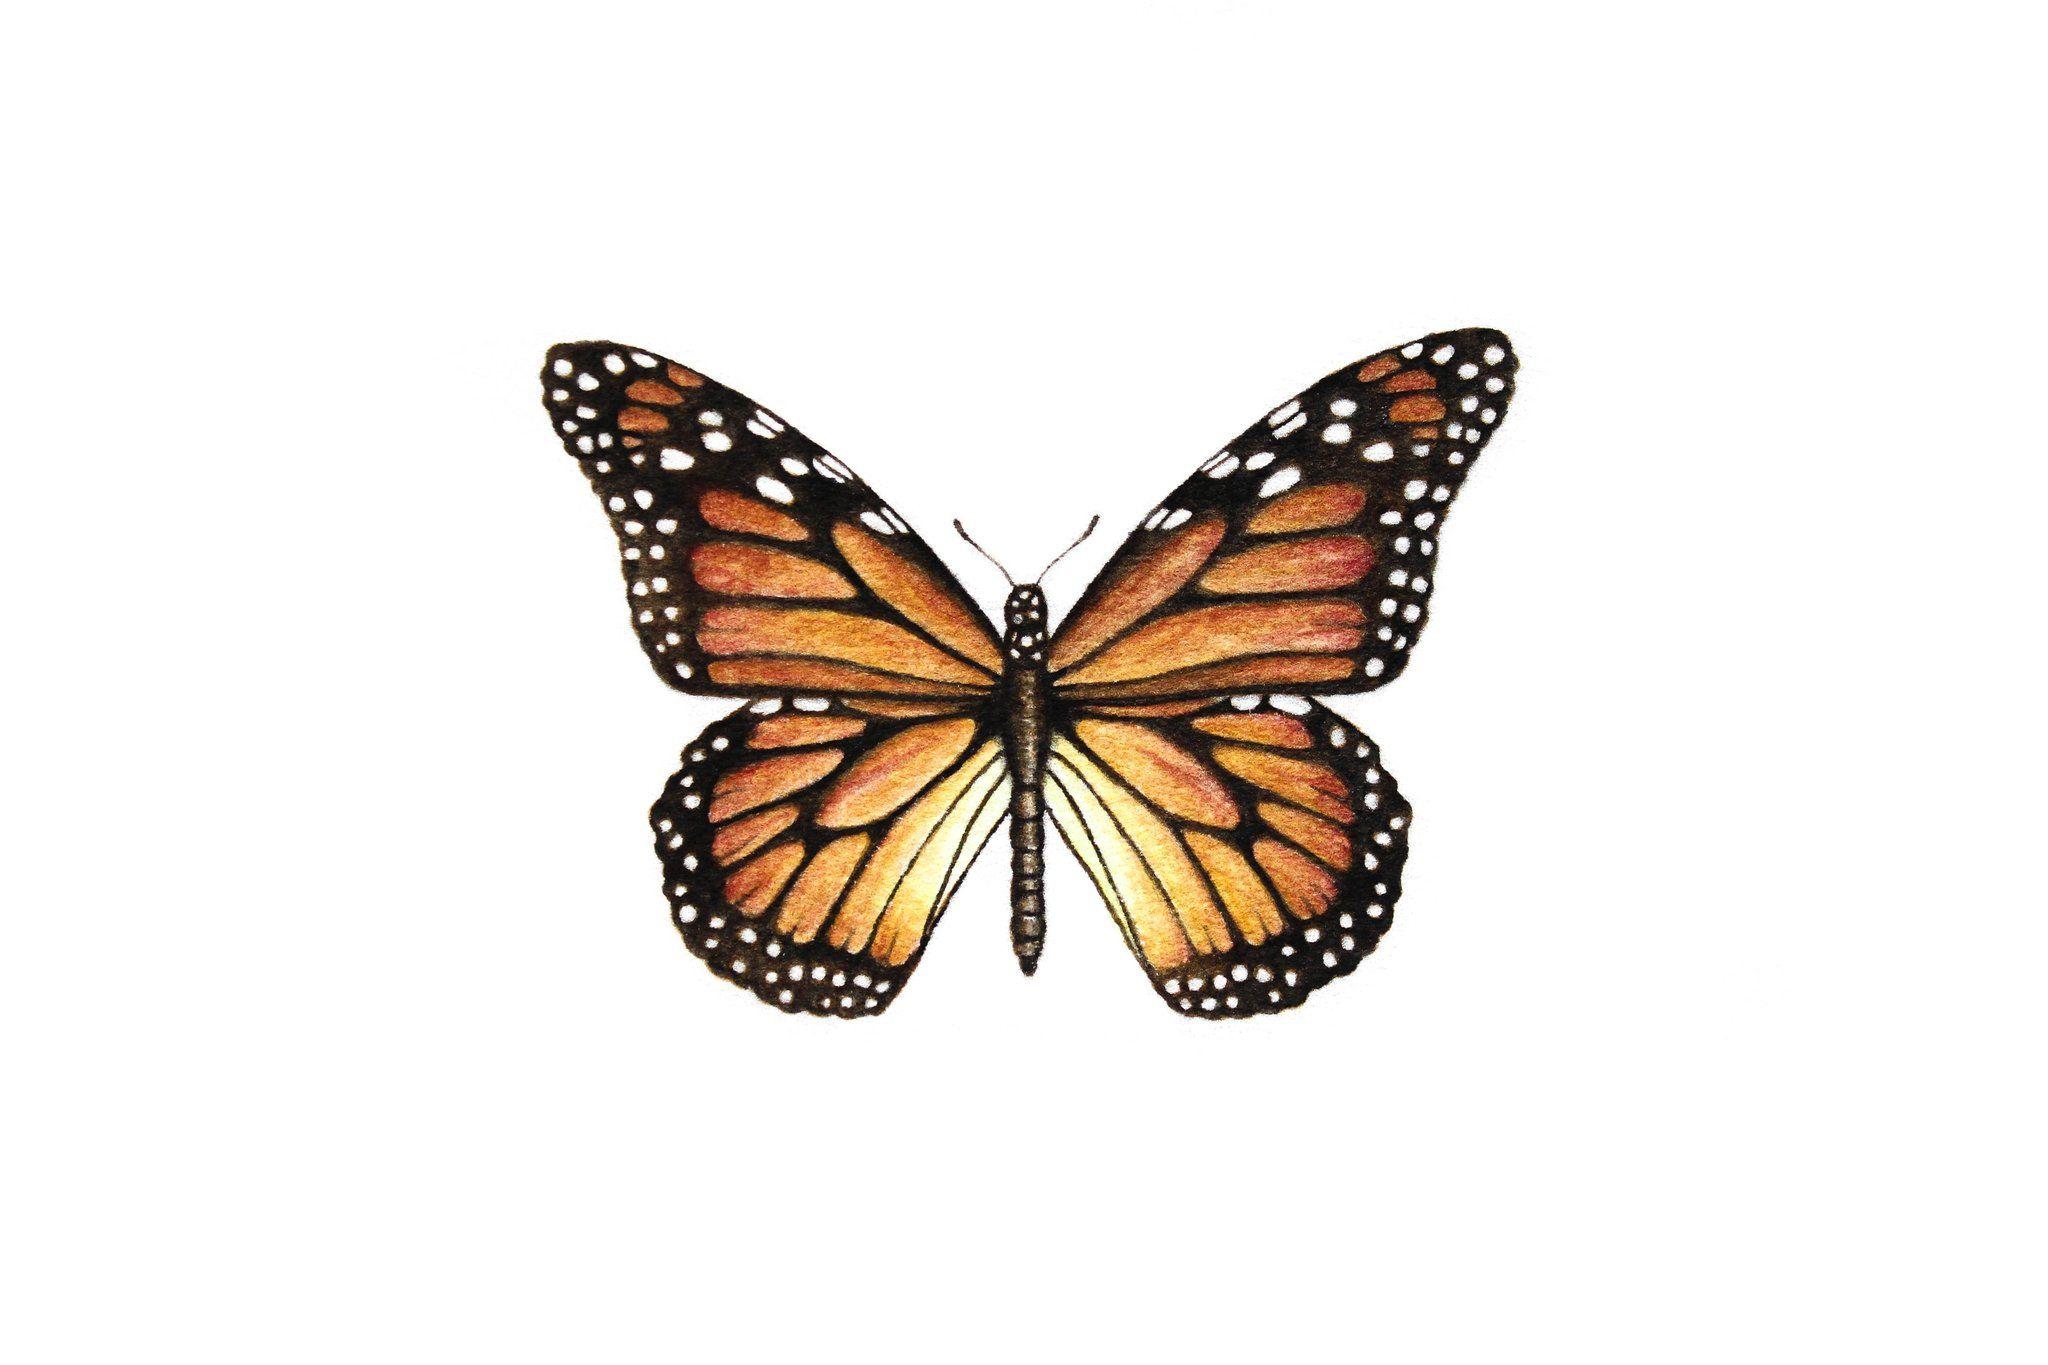 Monarch Butterfly Paintable Project Digital Download Monarch Butterfly Tattoo Butterfly Drawing Monarch Tattoo Butterfly tattoo wallpaper download